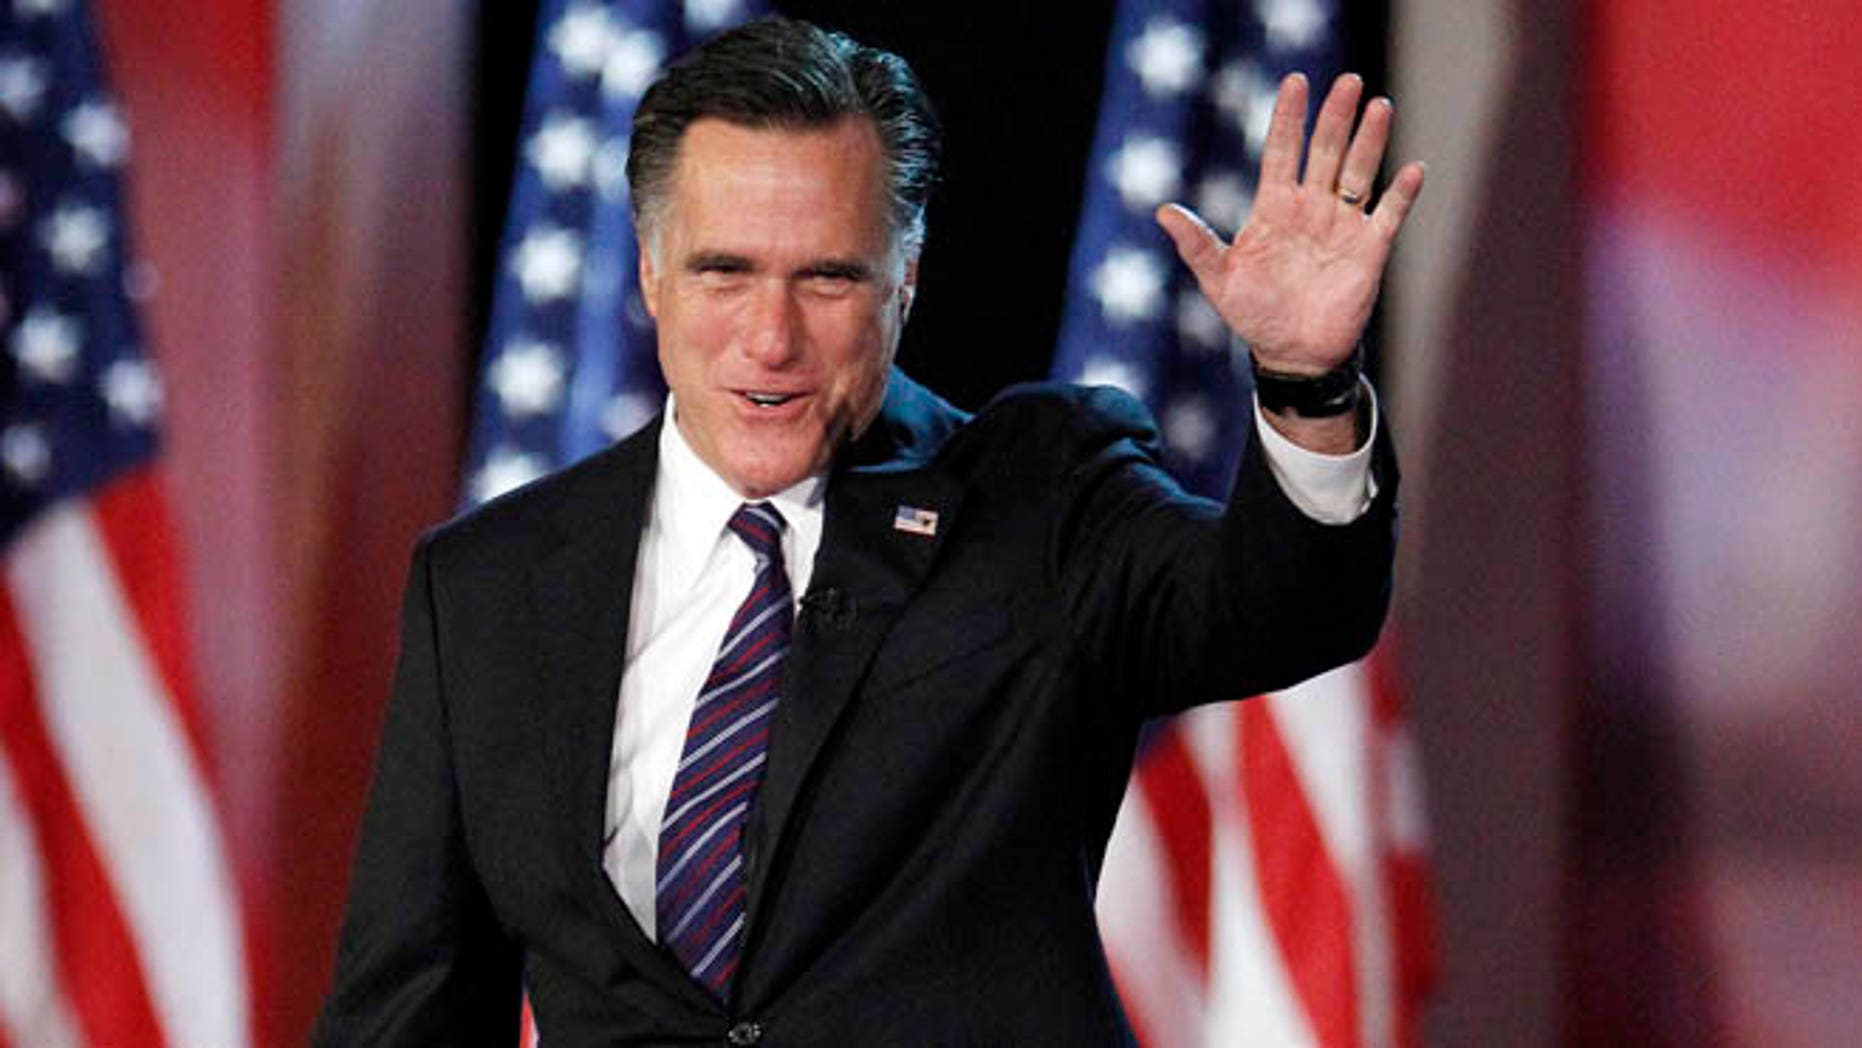 Nov. 7, 2012: Then-Republican presidential candidate and former Massachusetts Gov. Mitt Romney taking the stage to concede his quest for president at the Boston Convention Center in Boston.